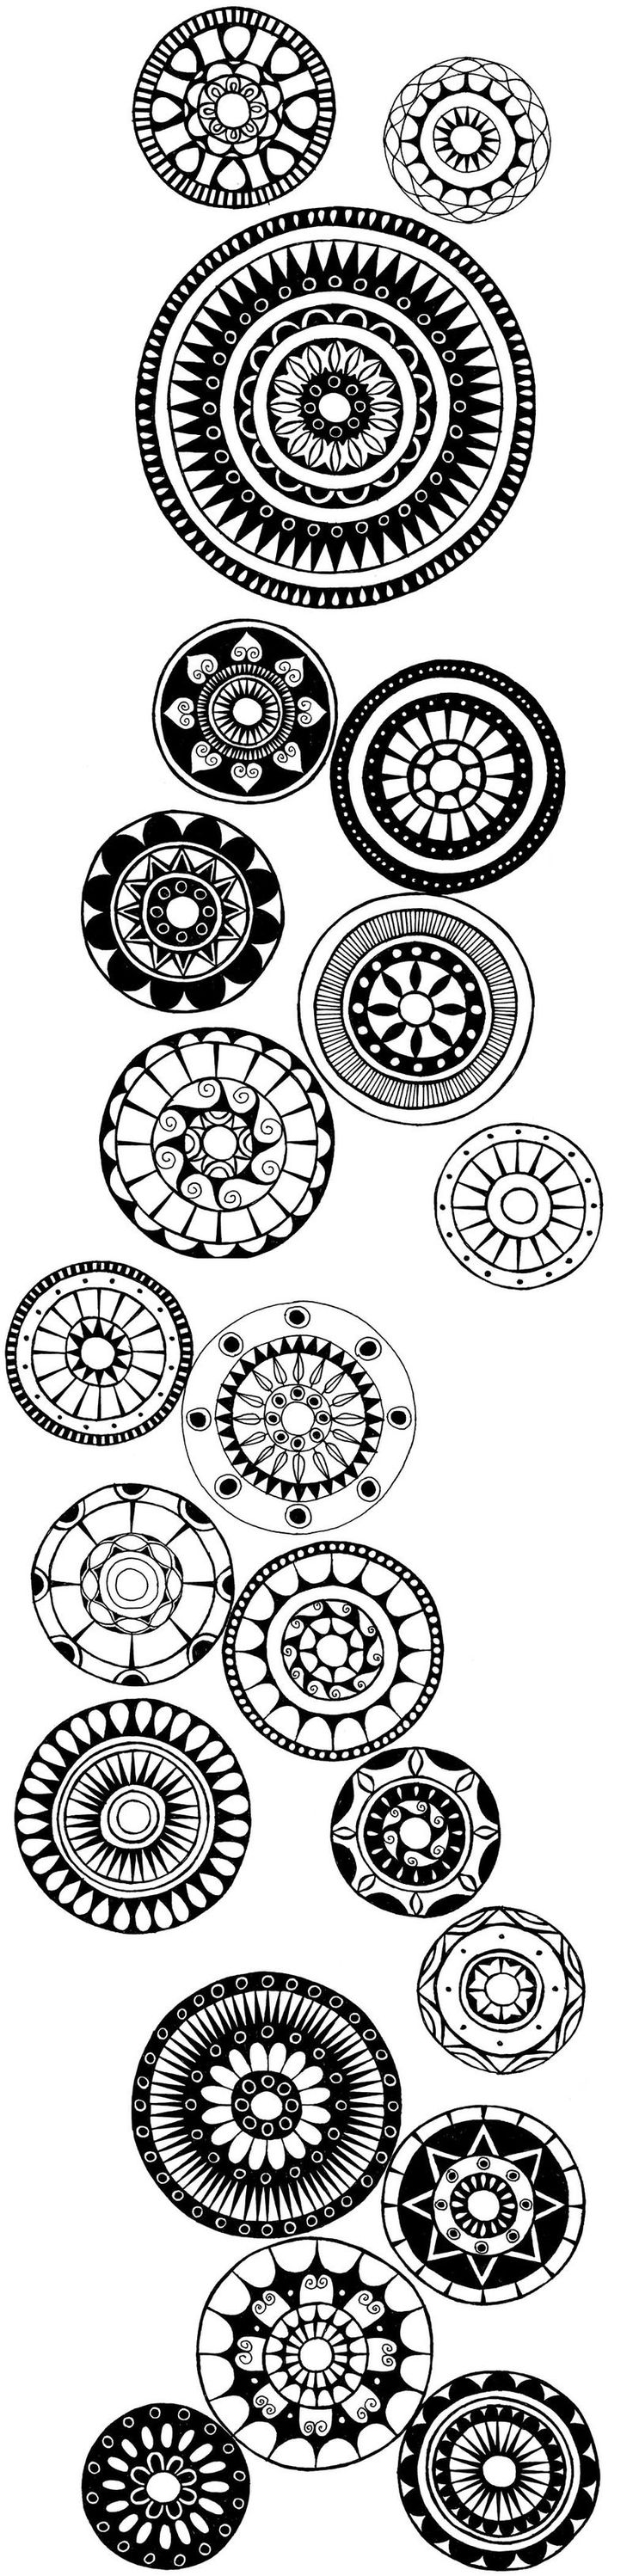 Mandalas Could you imagine these in polymer decorating a wall.... #henna #hena #mehendi #mehndi #indian #turkish #arabic #draw #drawing #hands # foot #feet #body #art #arte #artist #tattoo #bridal #wedding #love #beautiful #pic #picutre #photo #photography #foto #fotografia #detail #doodle #bw #black #white #bronze #red #color